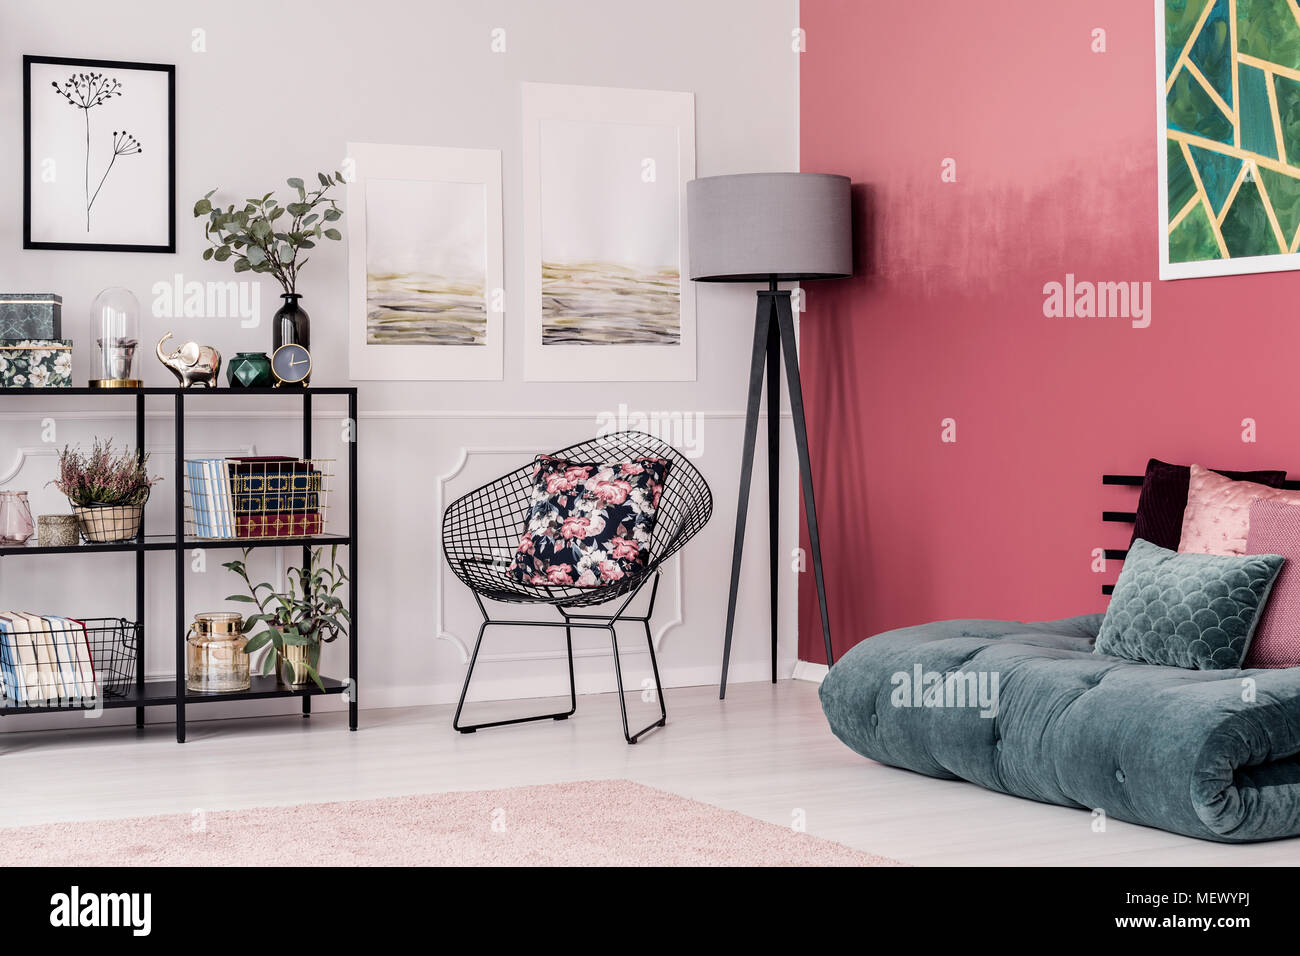 return trends your weave design back burgundy pillows pieces the room collage decor nicole furniture lamp touches living a add wine home is or lauren into with of to vase